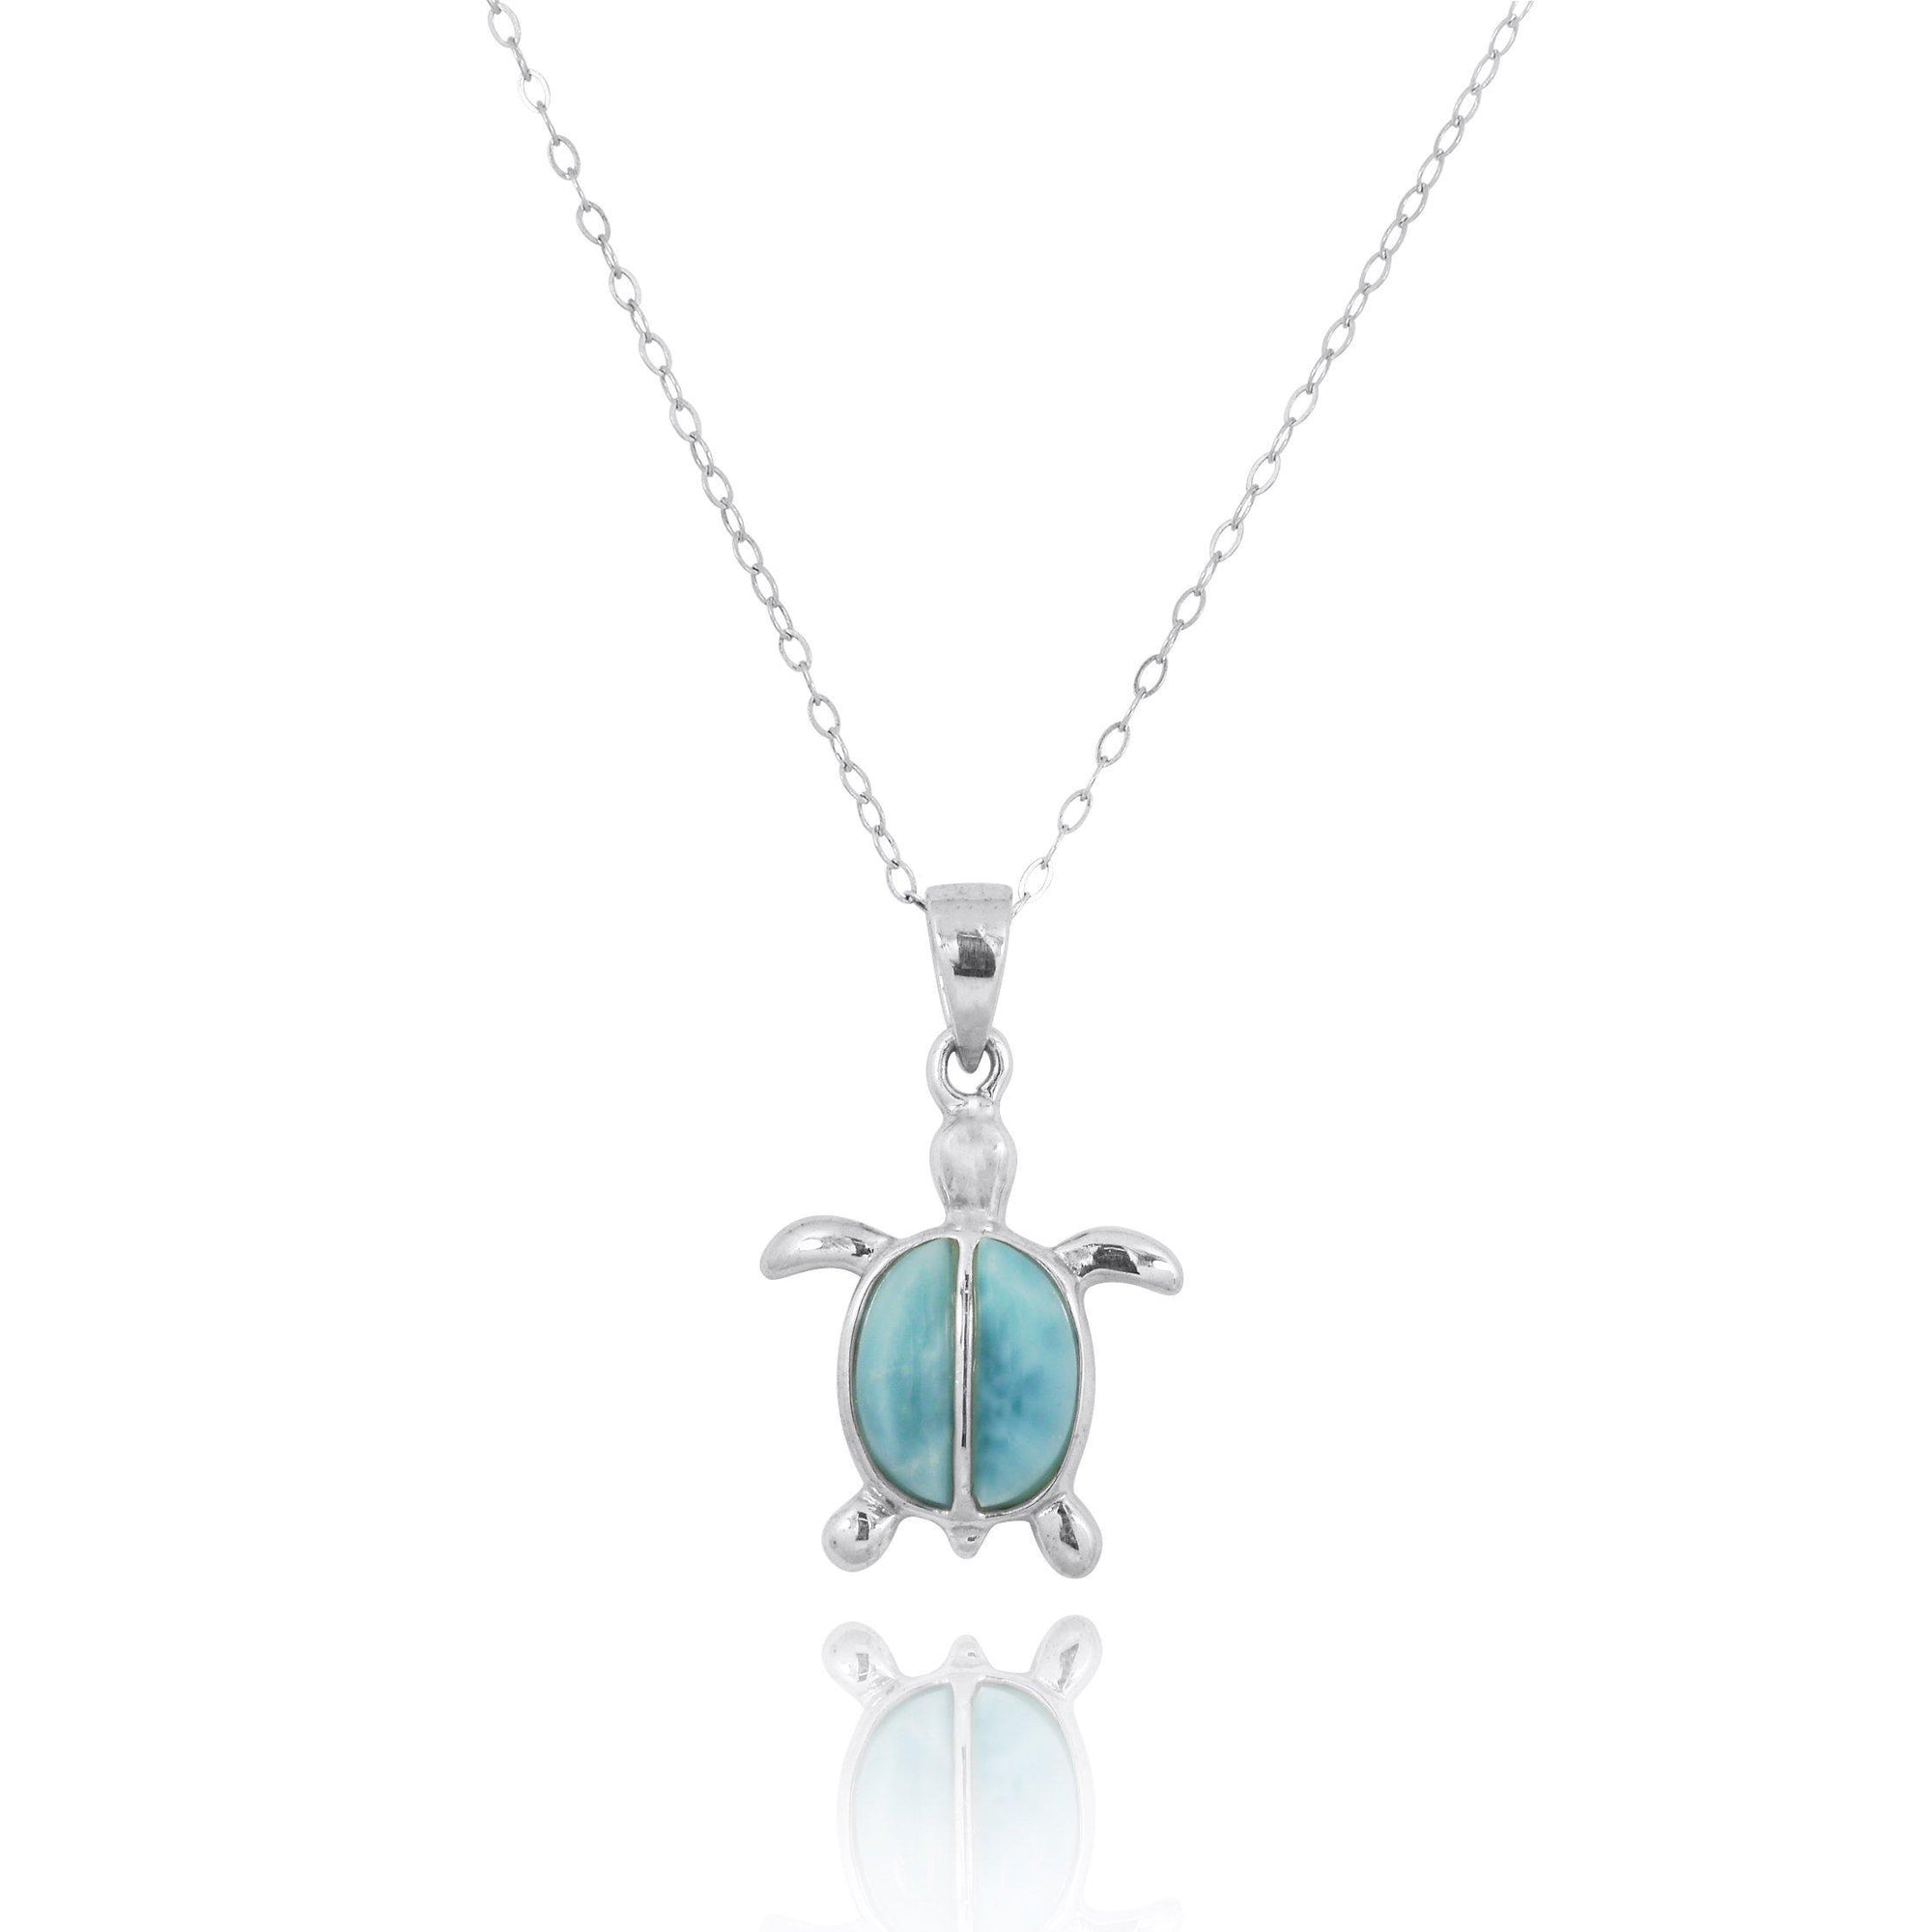 Sterling Silver Turtle with Two Larimar Stones Pendant Necklace